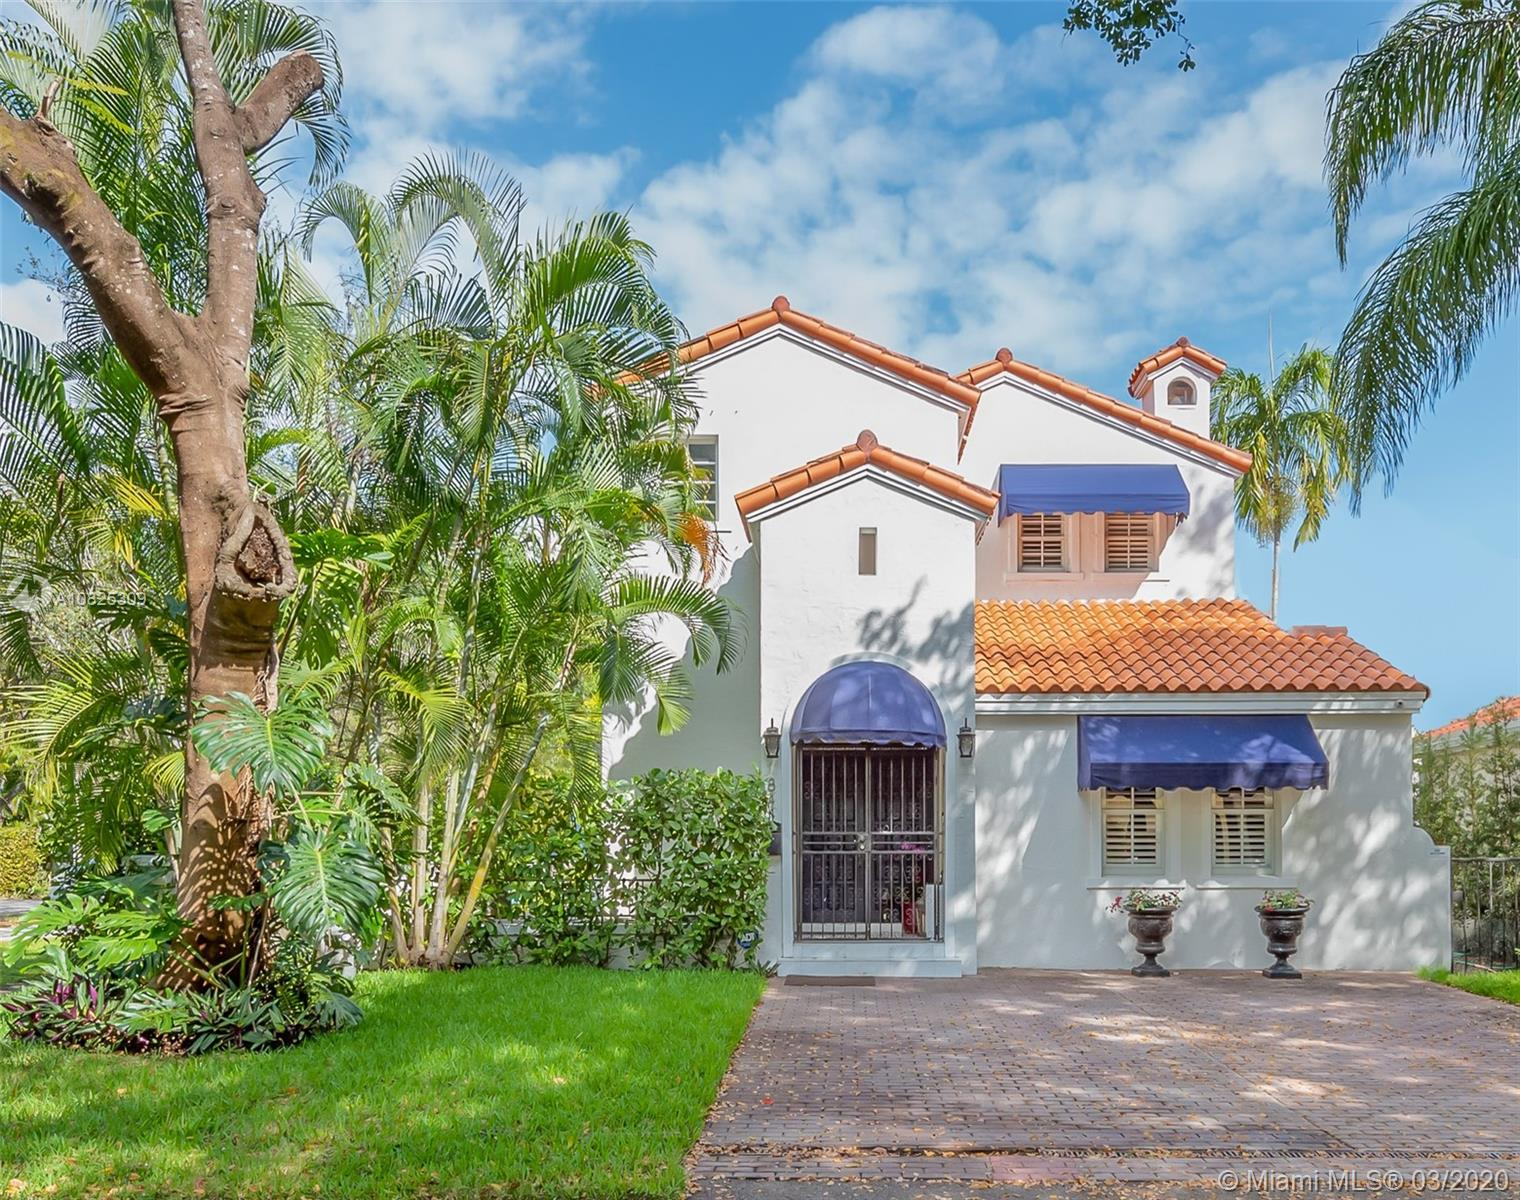 841 Andalusia Ave, Coral Gables FL 33134